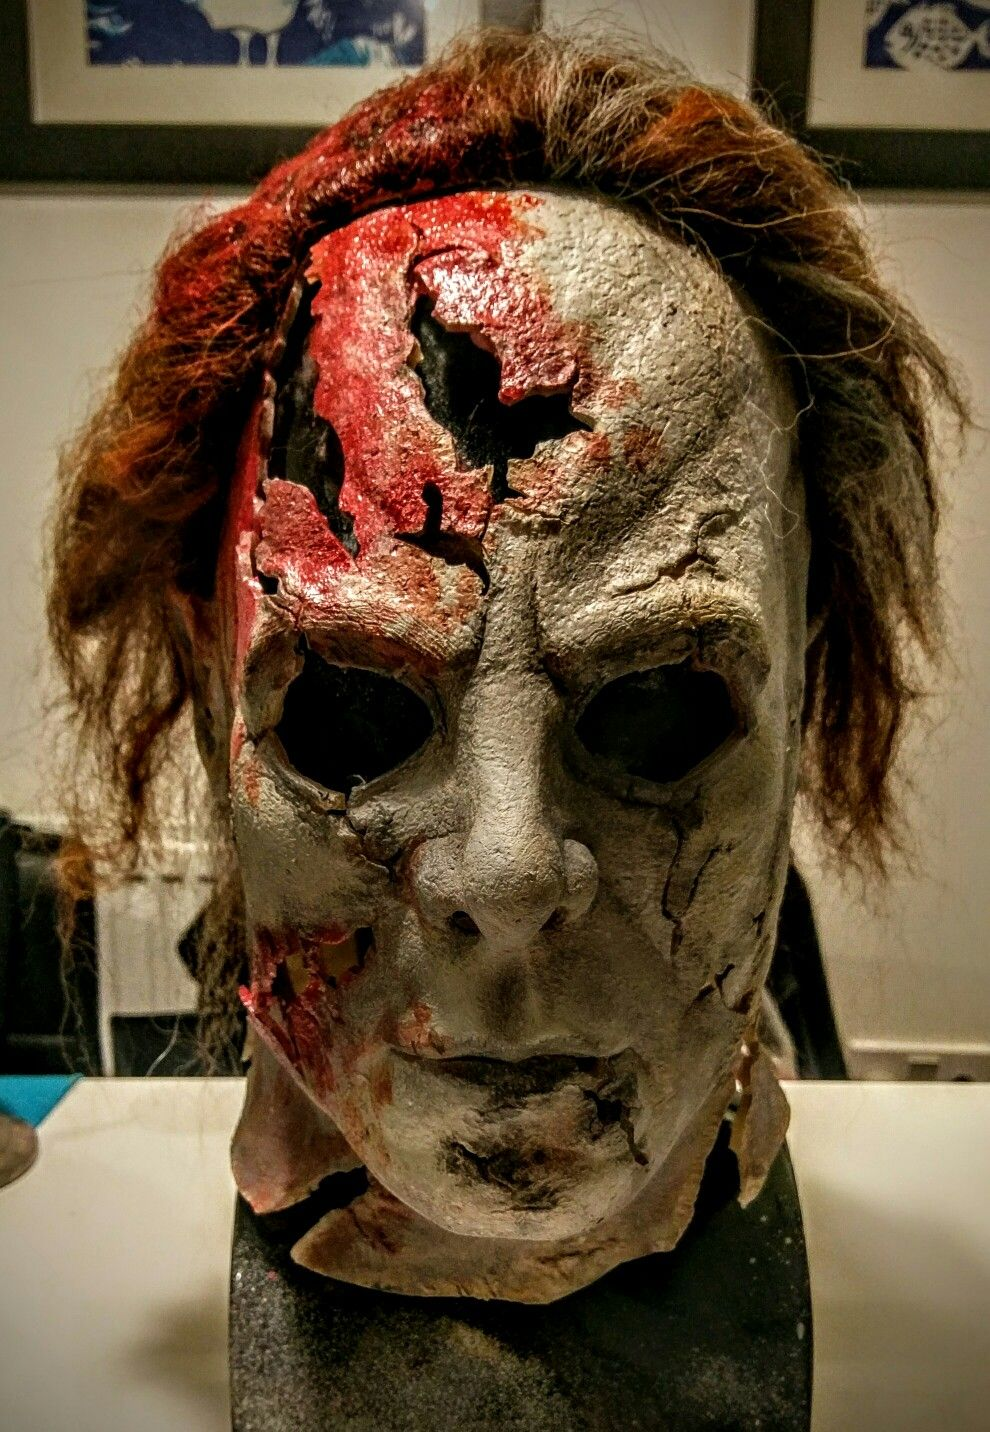 Halloween 2 Rob Zombie Mask.Rob Zombie Halloween 2 Mask Available In My Shop Soon New